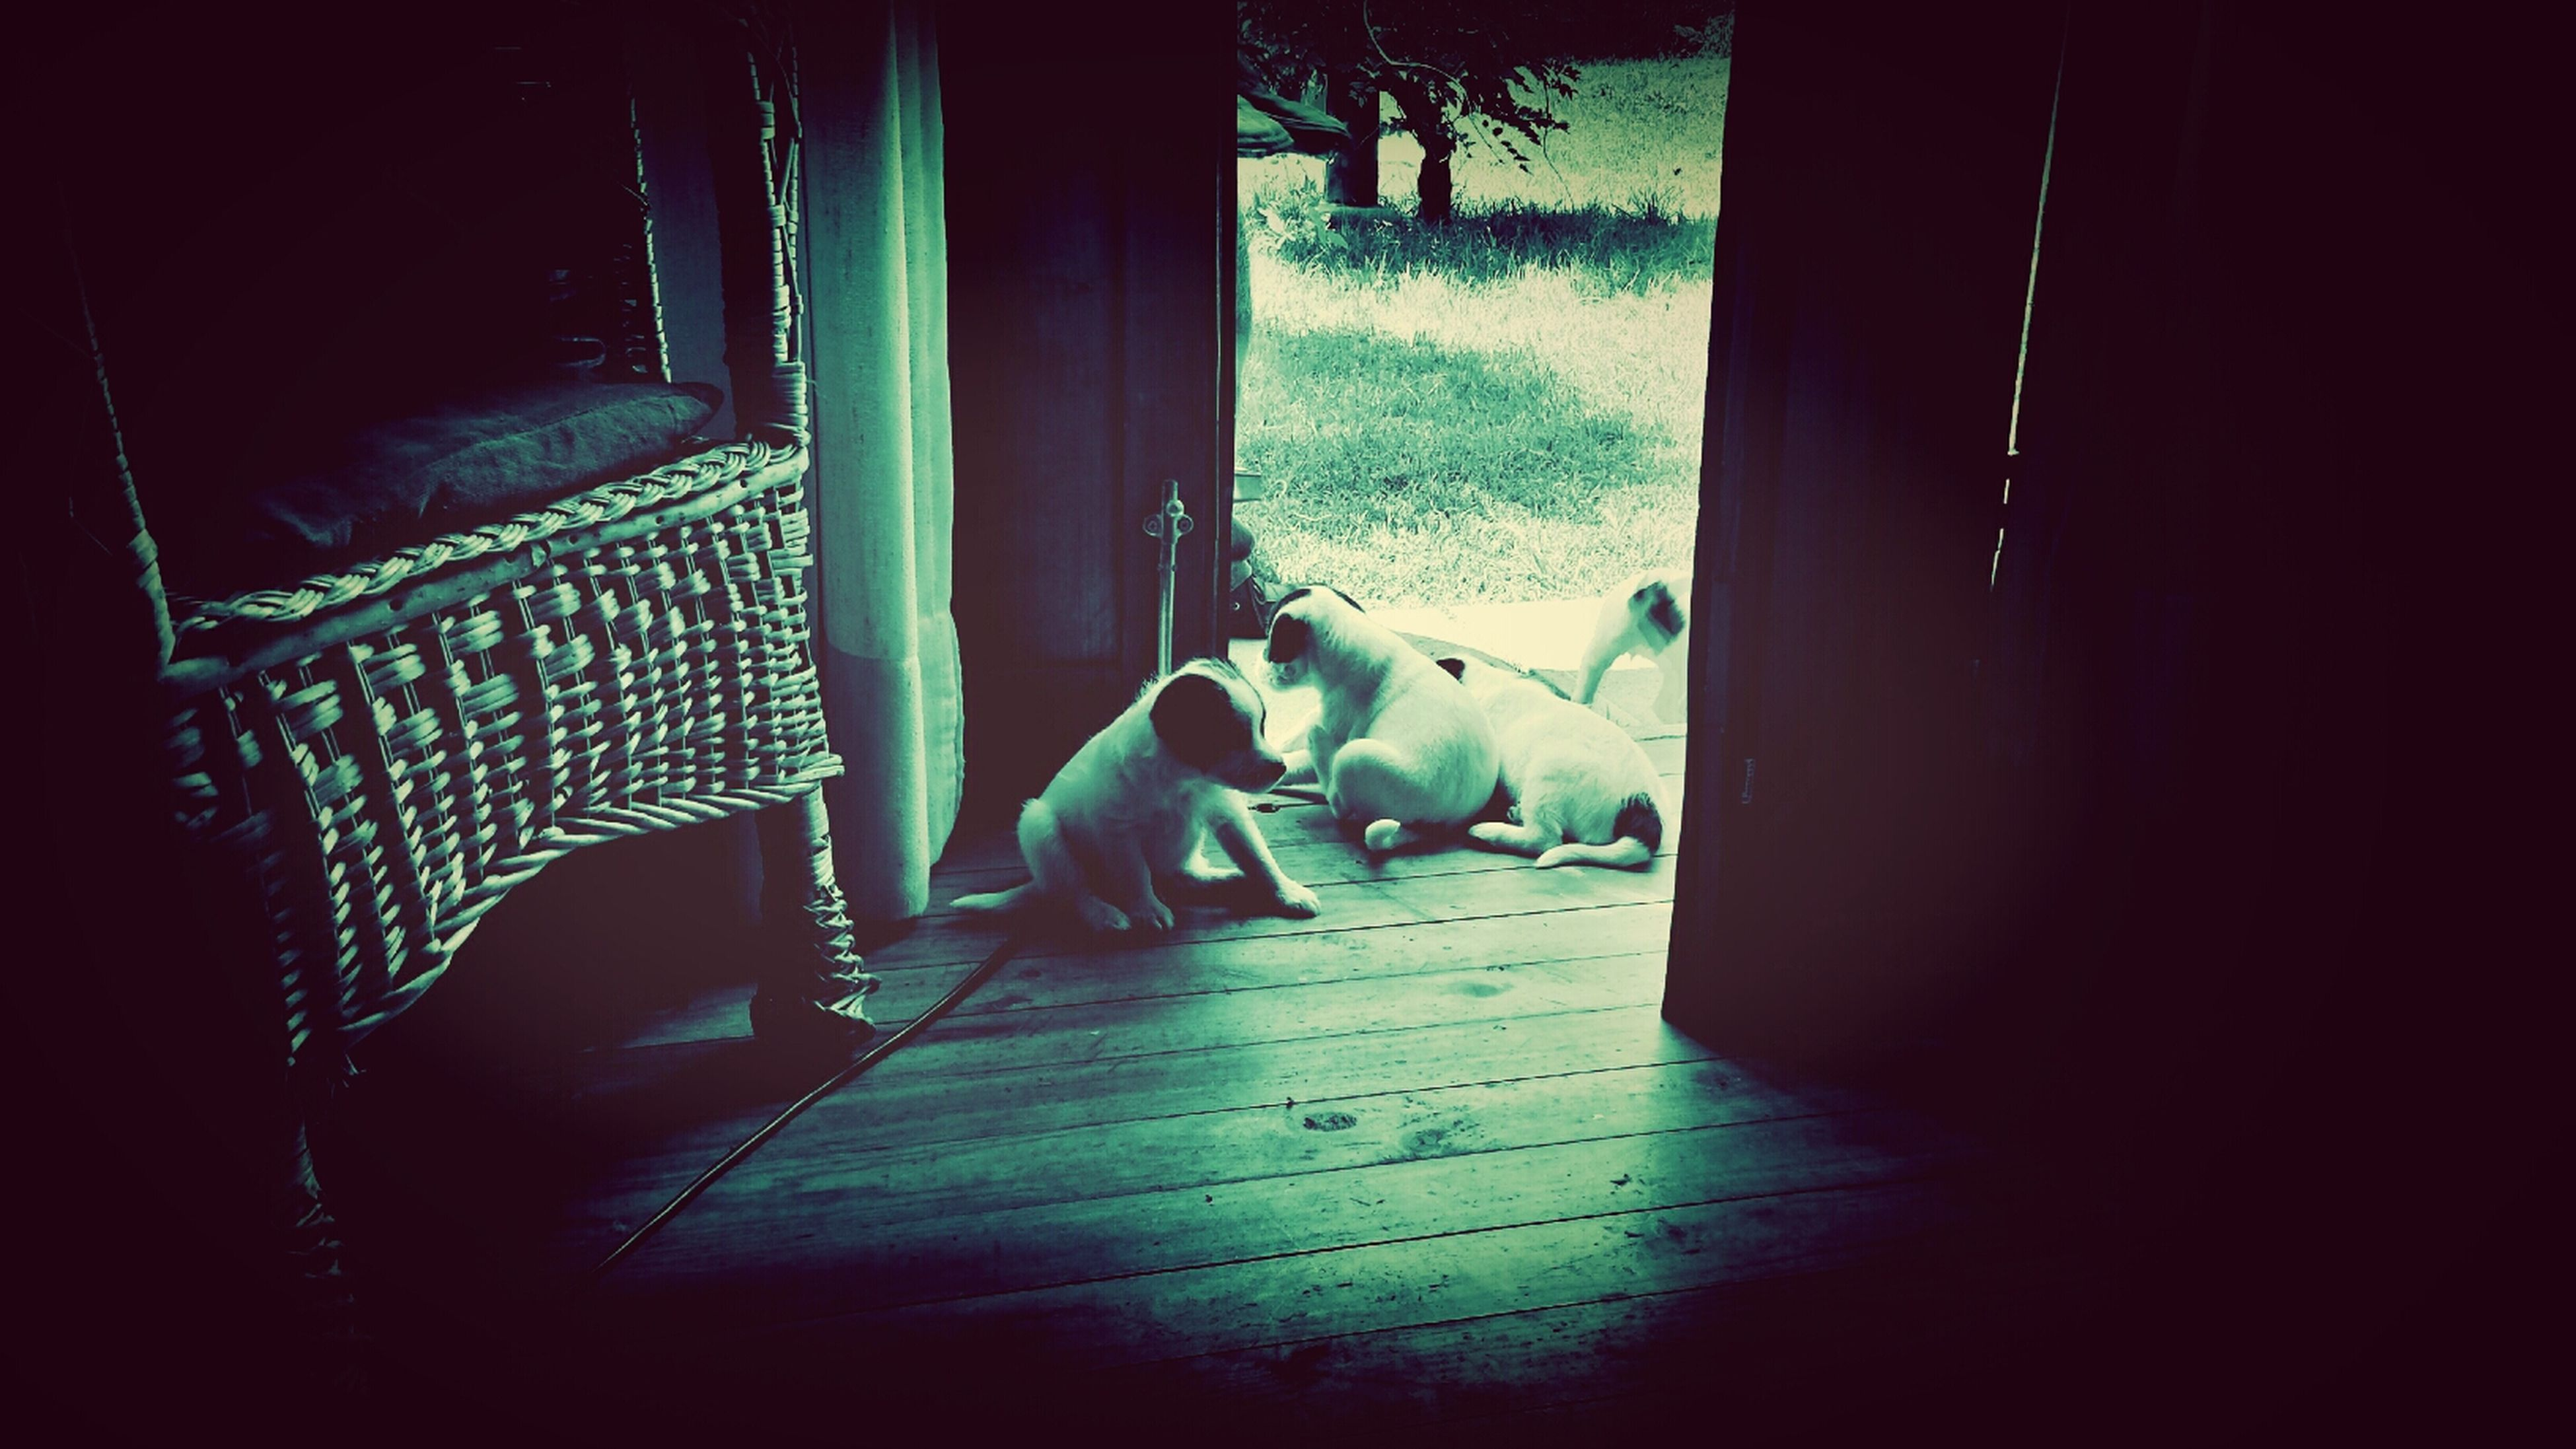 indoors, window, pets, domestic animals, home interior, domestic cat, mammal, door, curtain, sunlight, one animal, house, relaxation, animal themes, cat, wood - material, day, bed, no people, dog